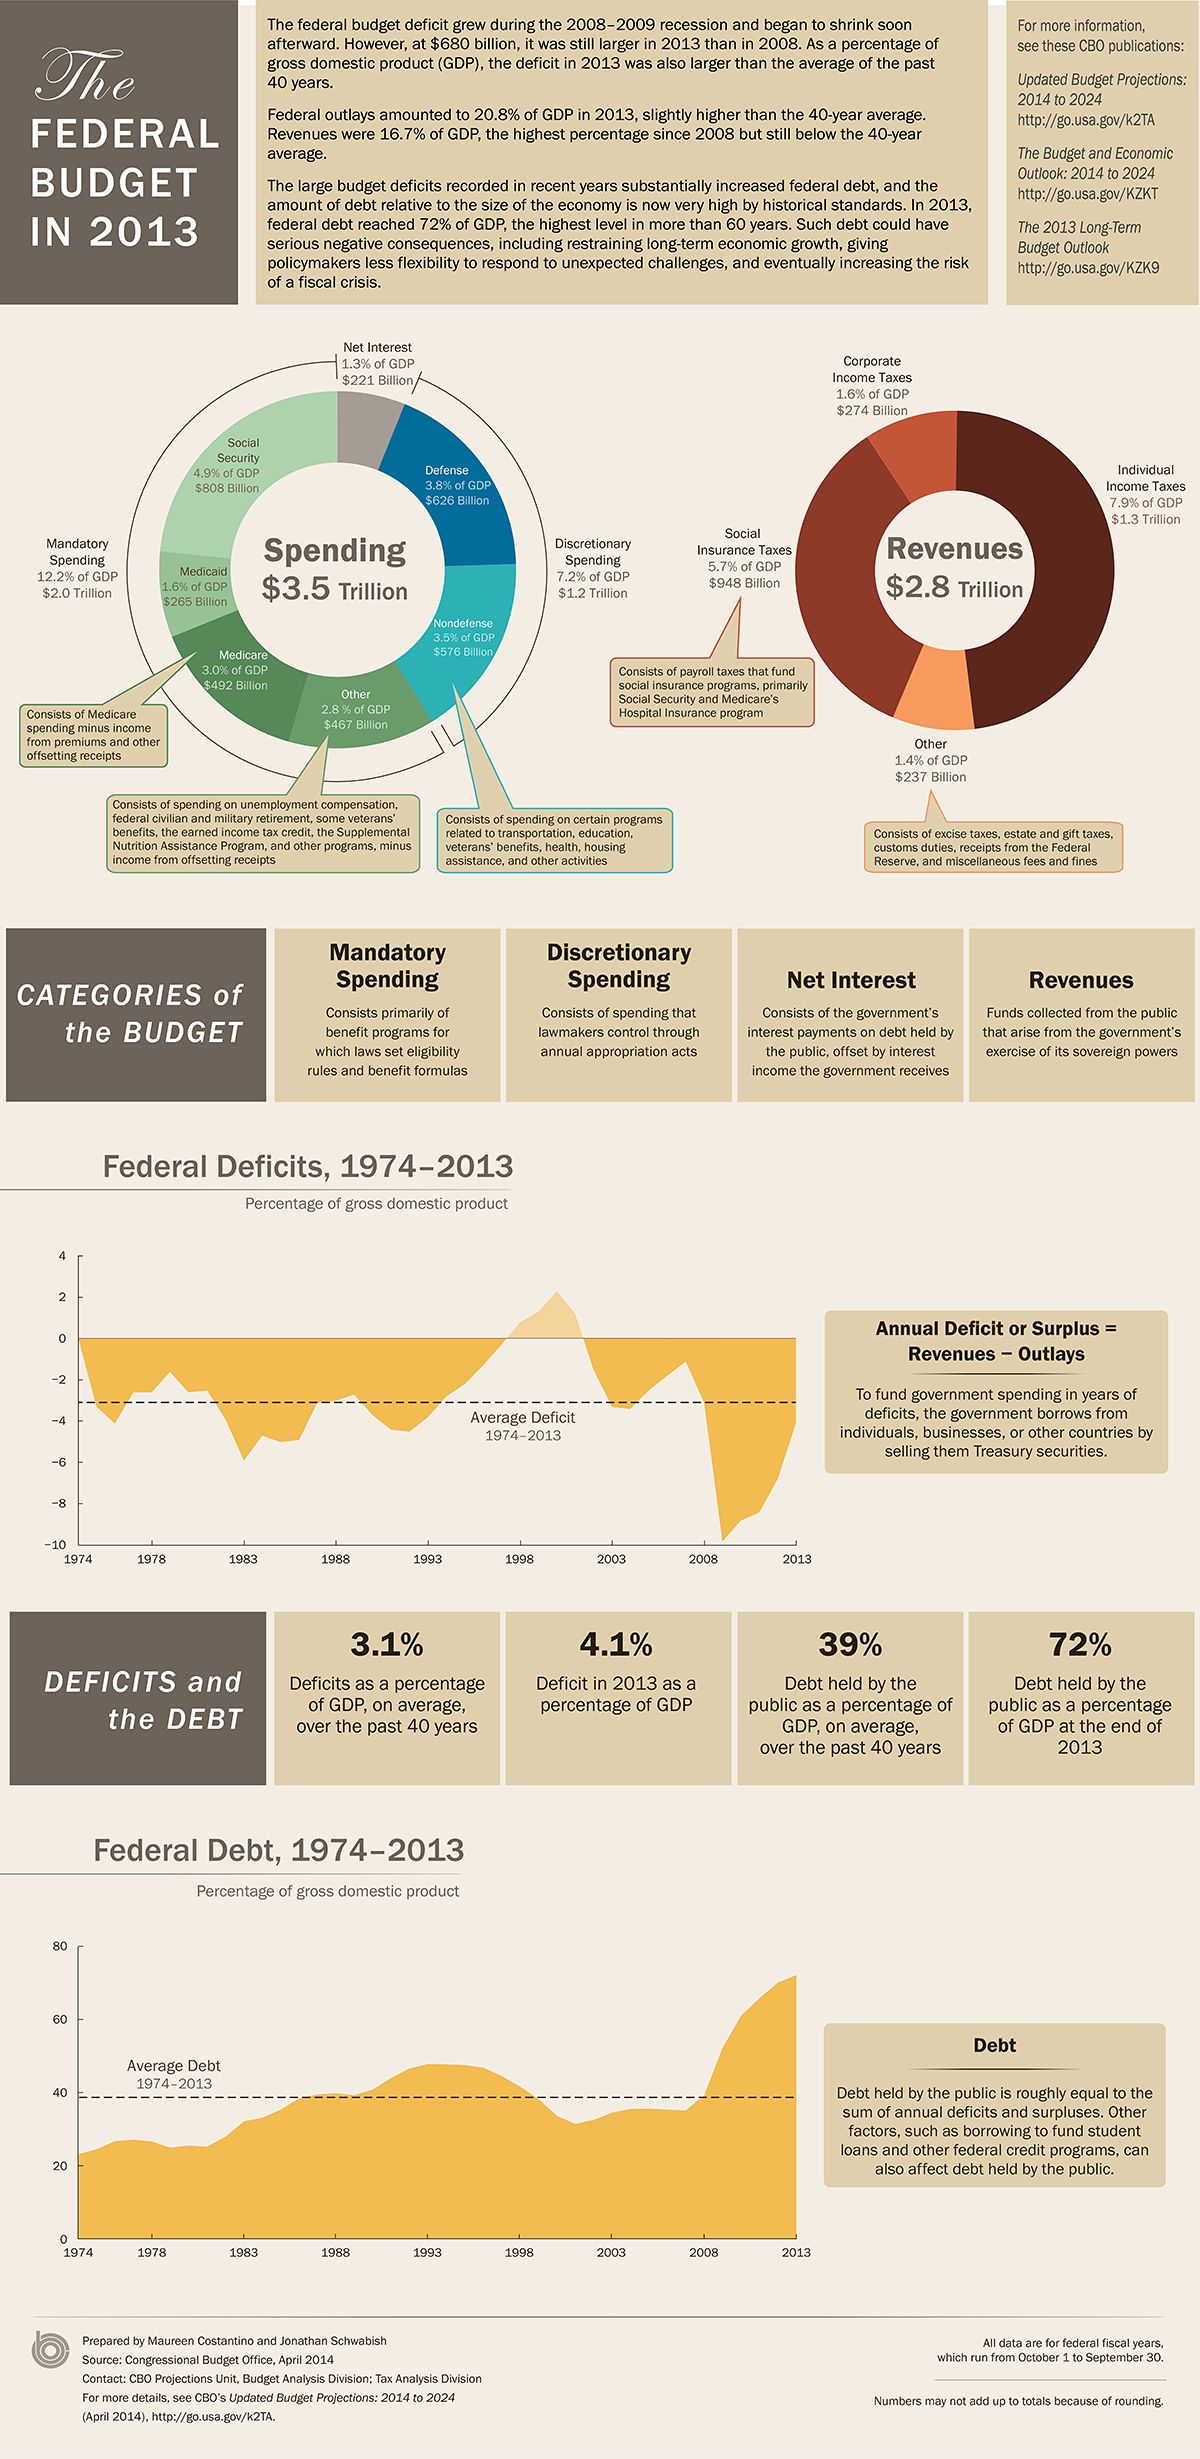 The Federal Budget in 2013: An Infographic